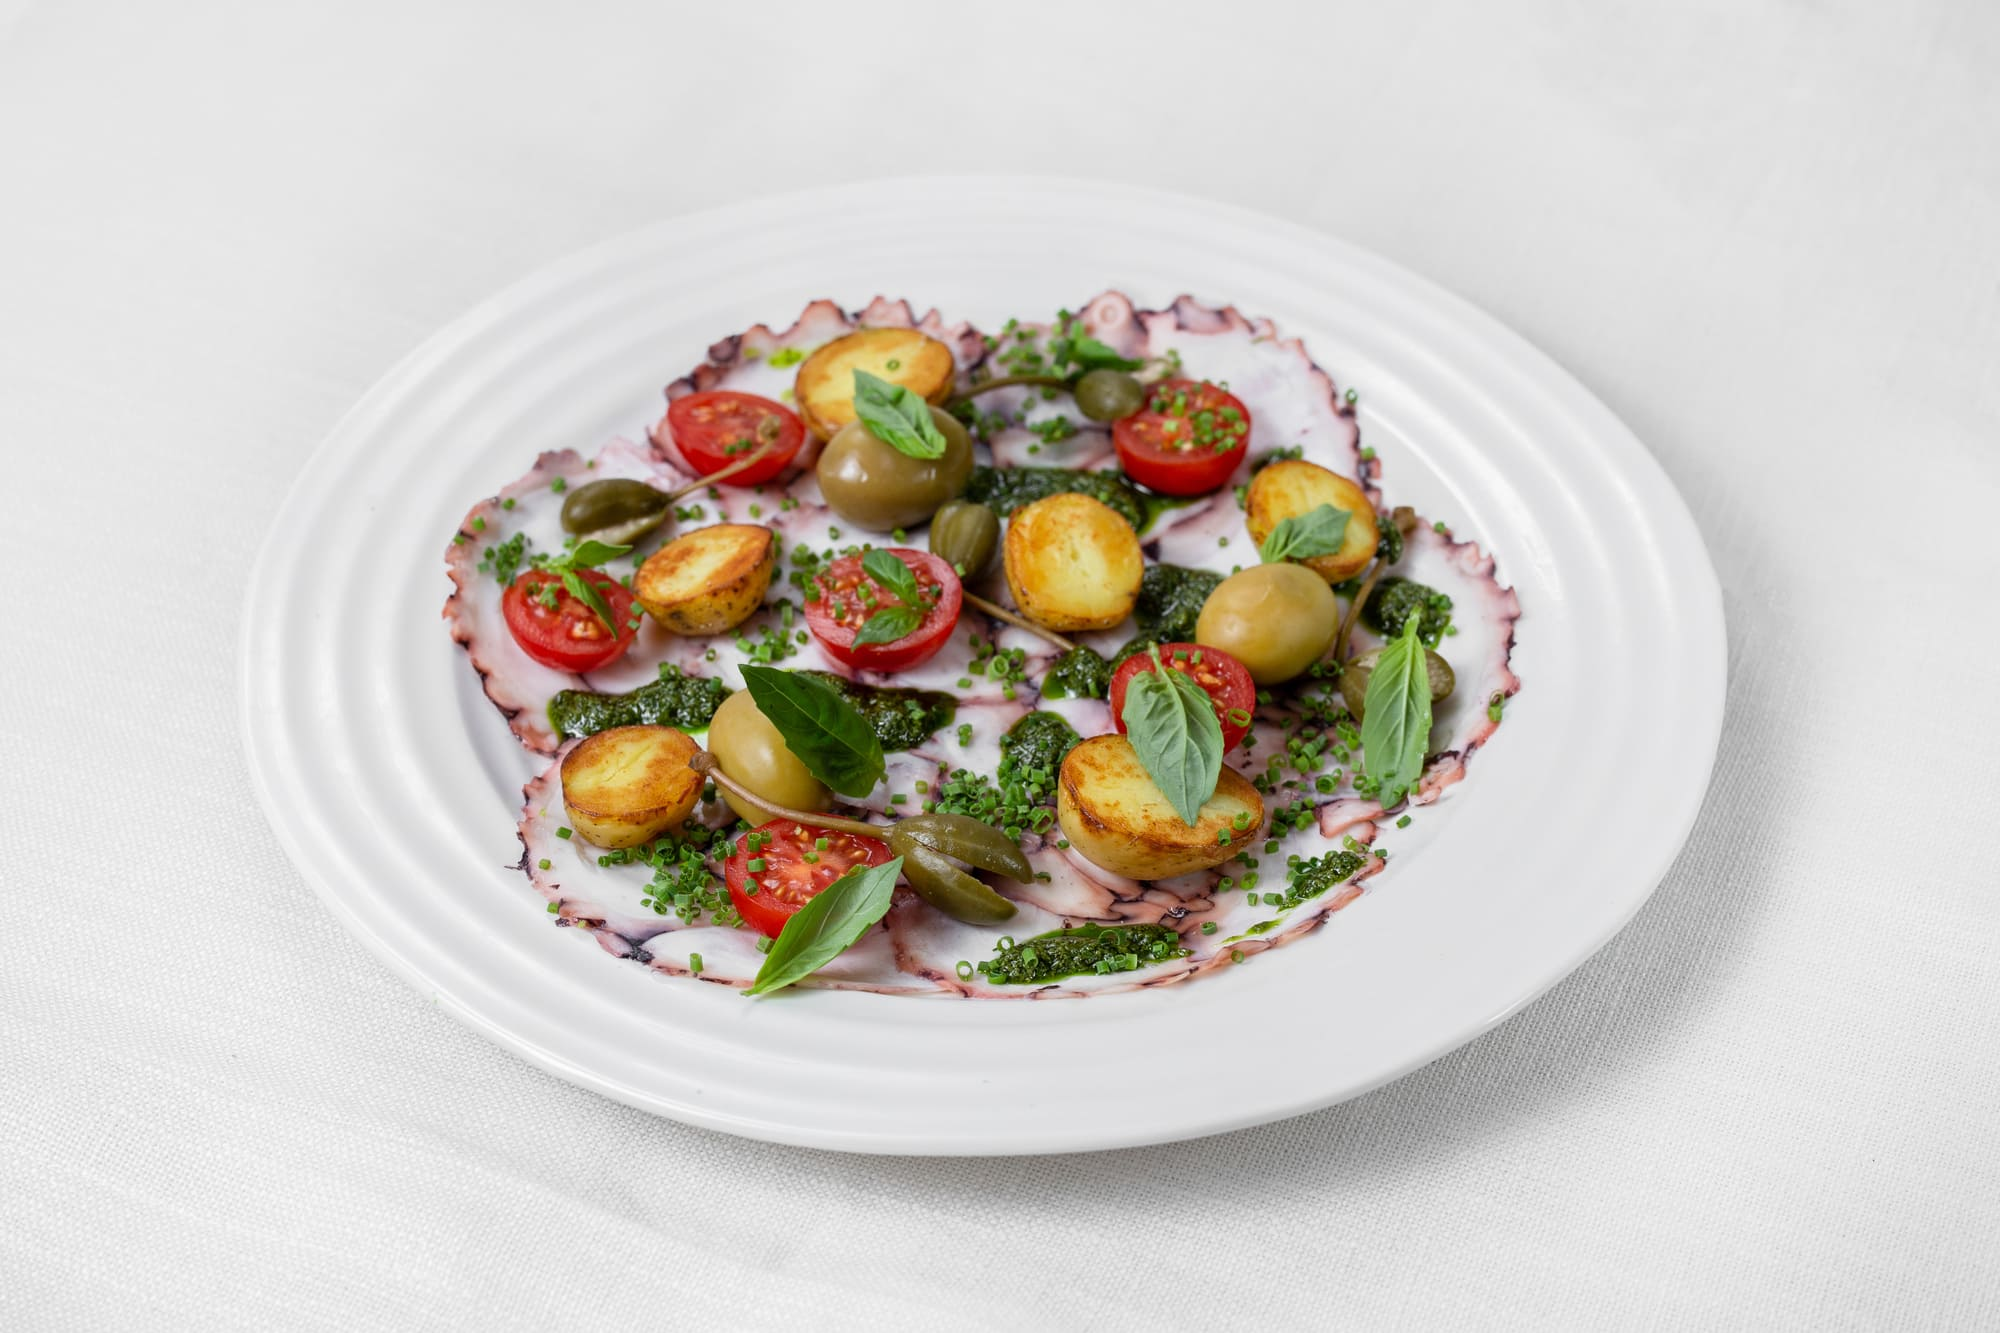 Octopus carpaccio with young potatoes, capers and cherry tomatoes